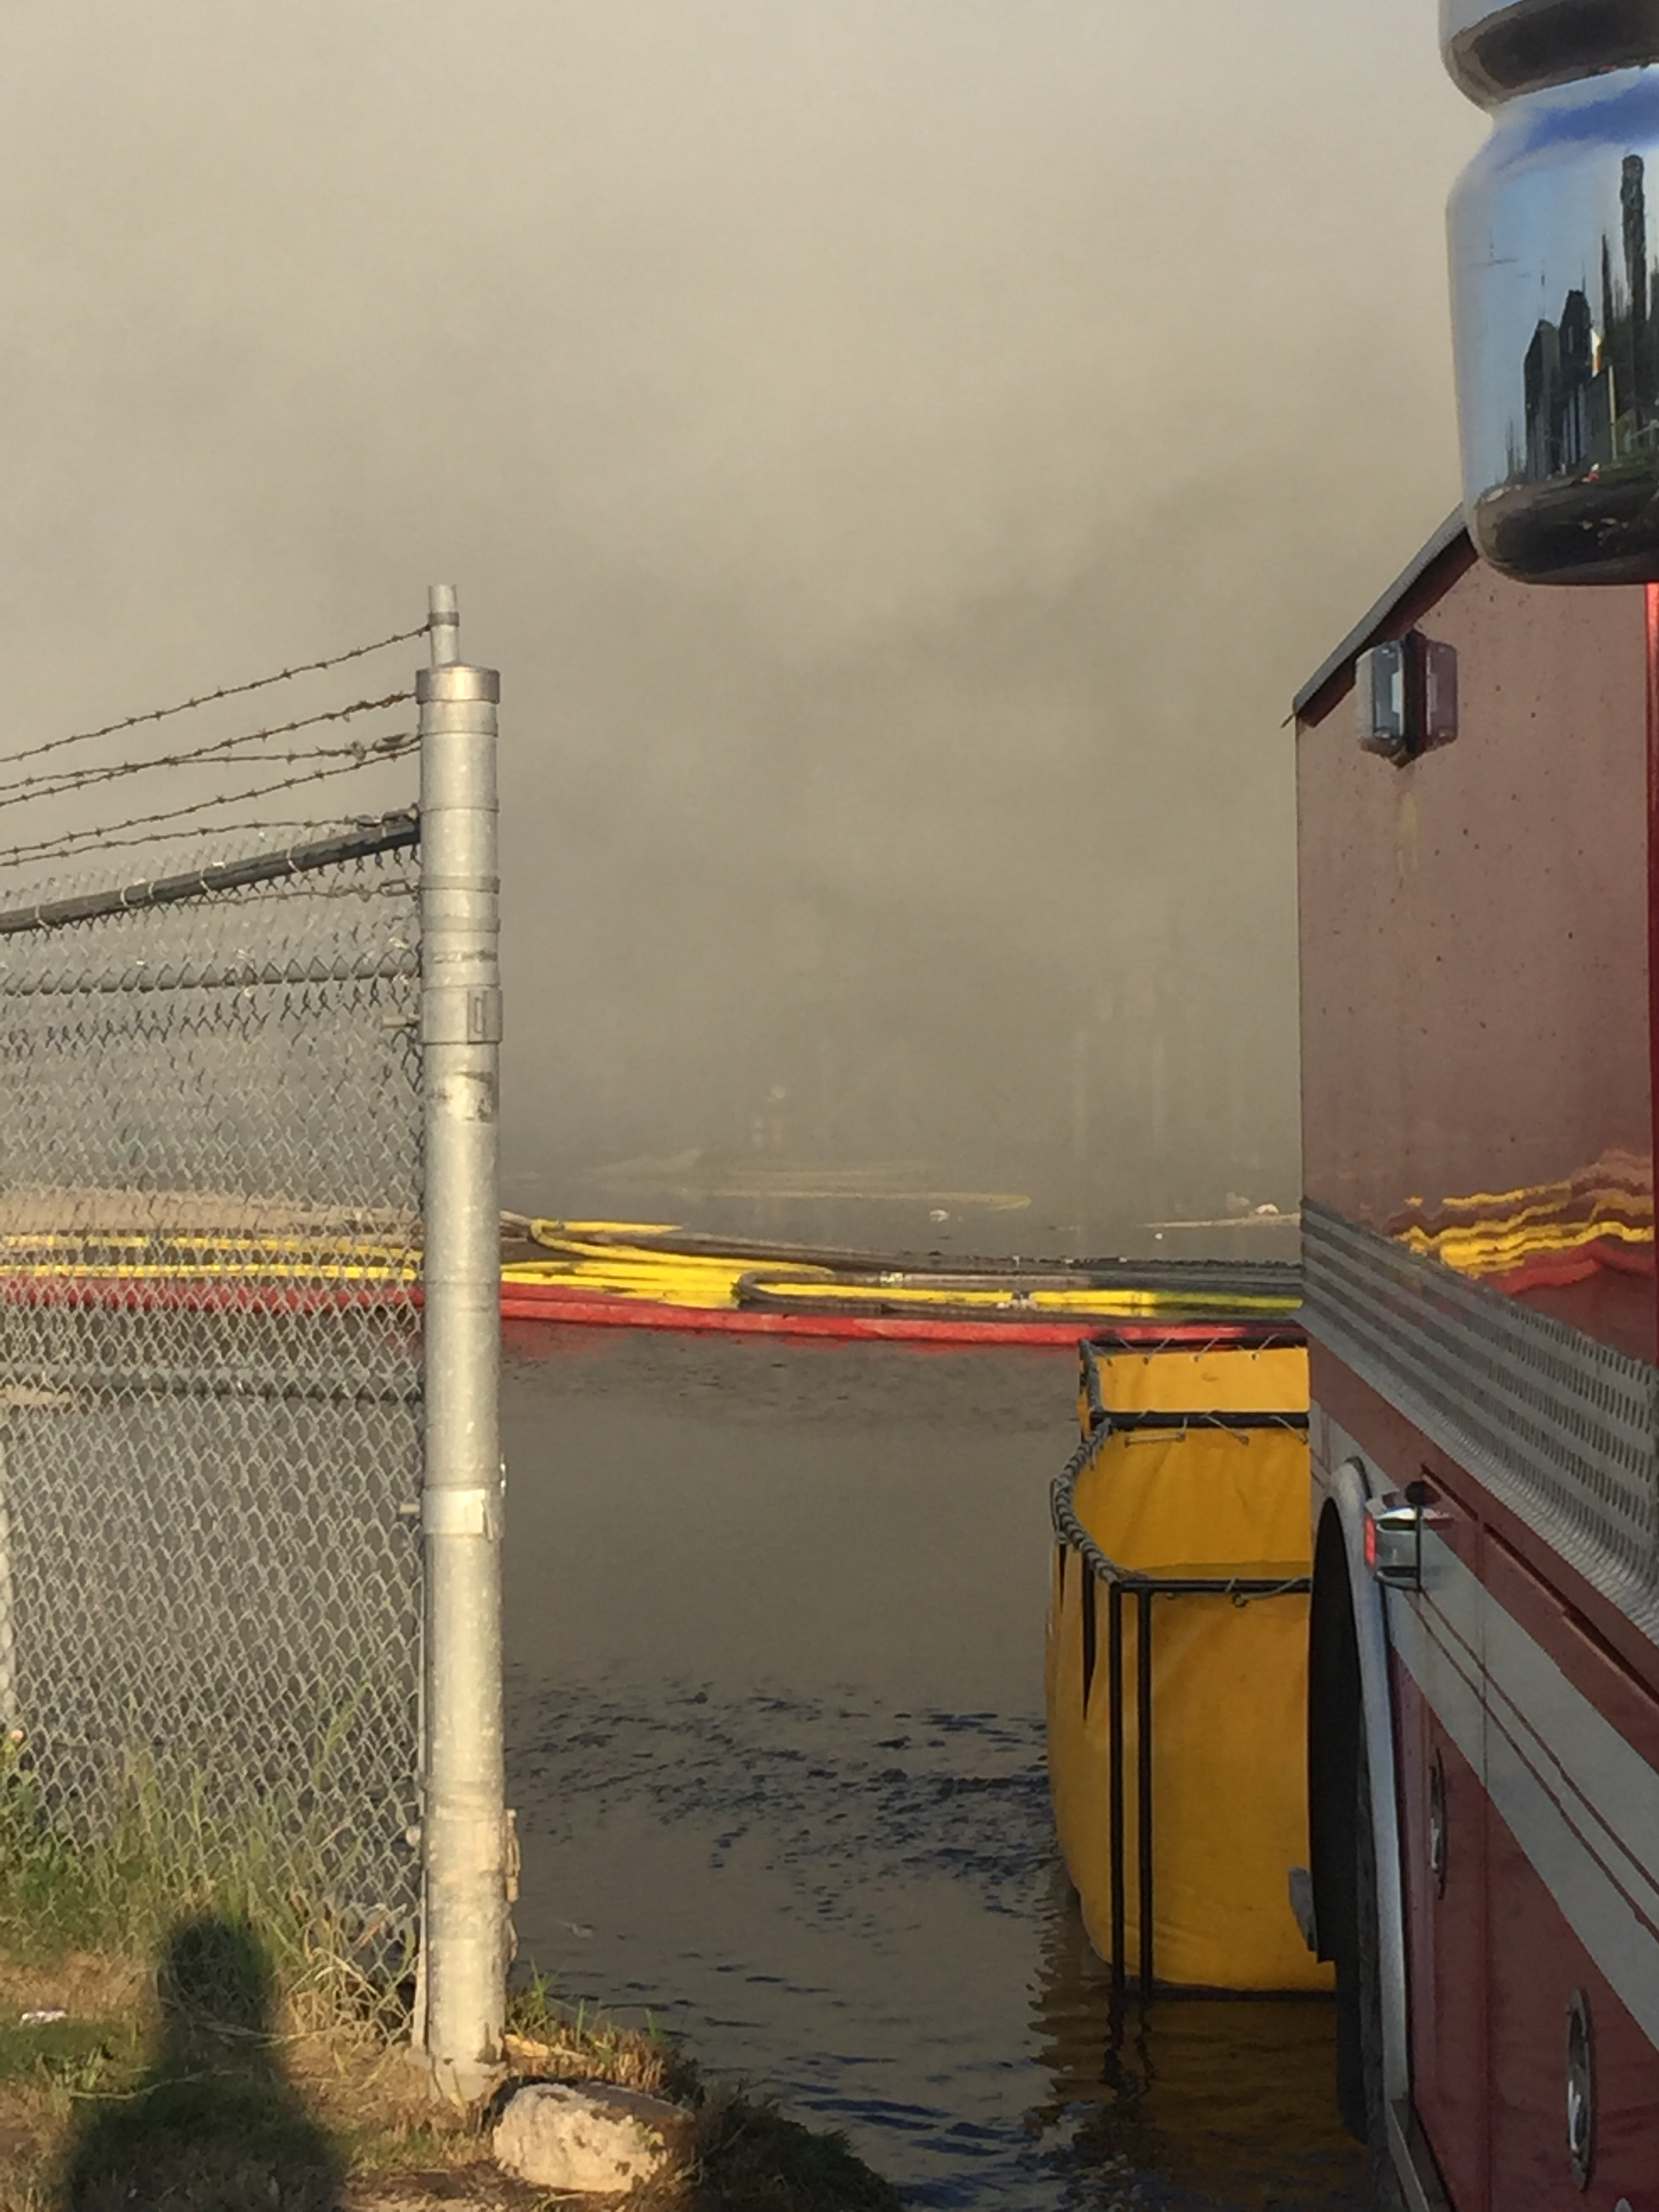 Fire at Waste Management Facility